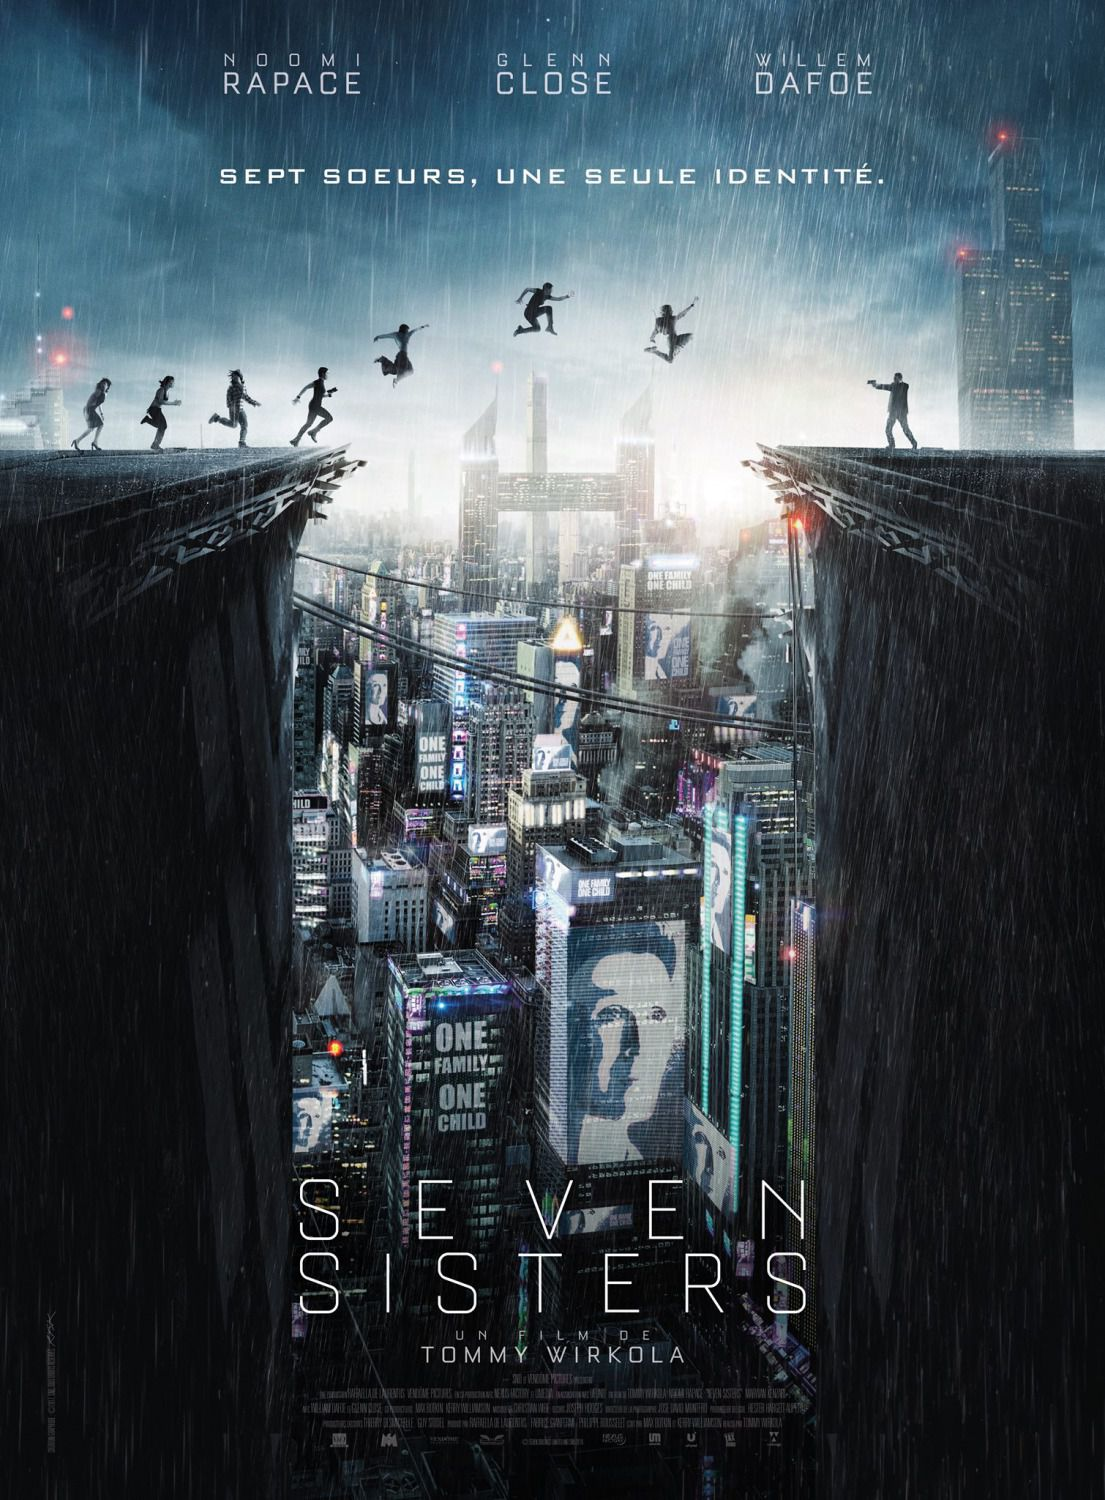 Film - Seven Siters - What happened to Monday - Sette Sorelle - Noomi Rapace - Glenn Close - Willem Dafoe - Sette Sorelle, una sola identità